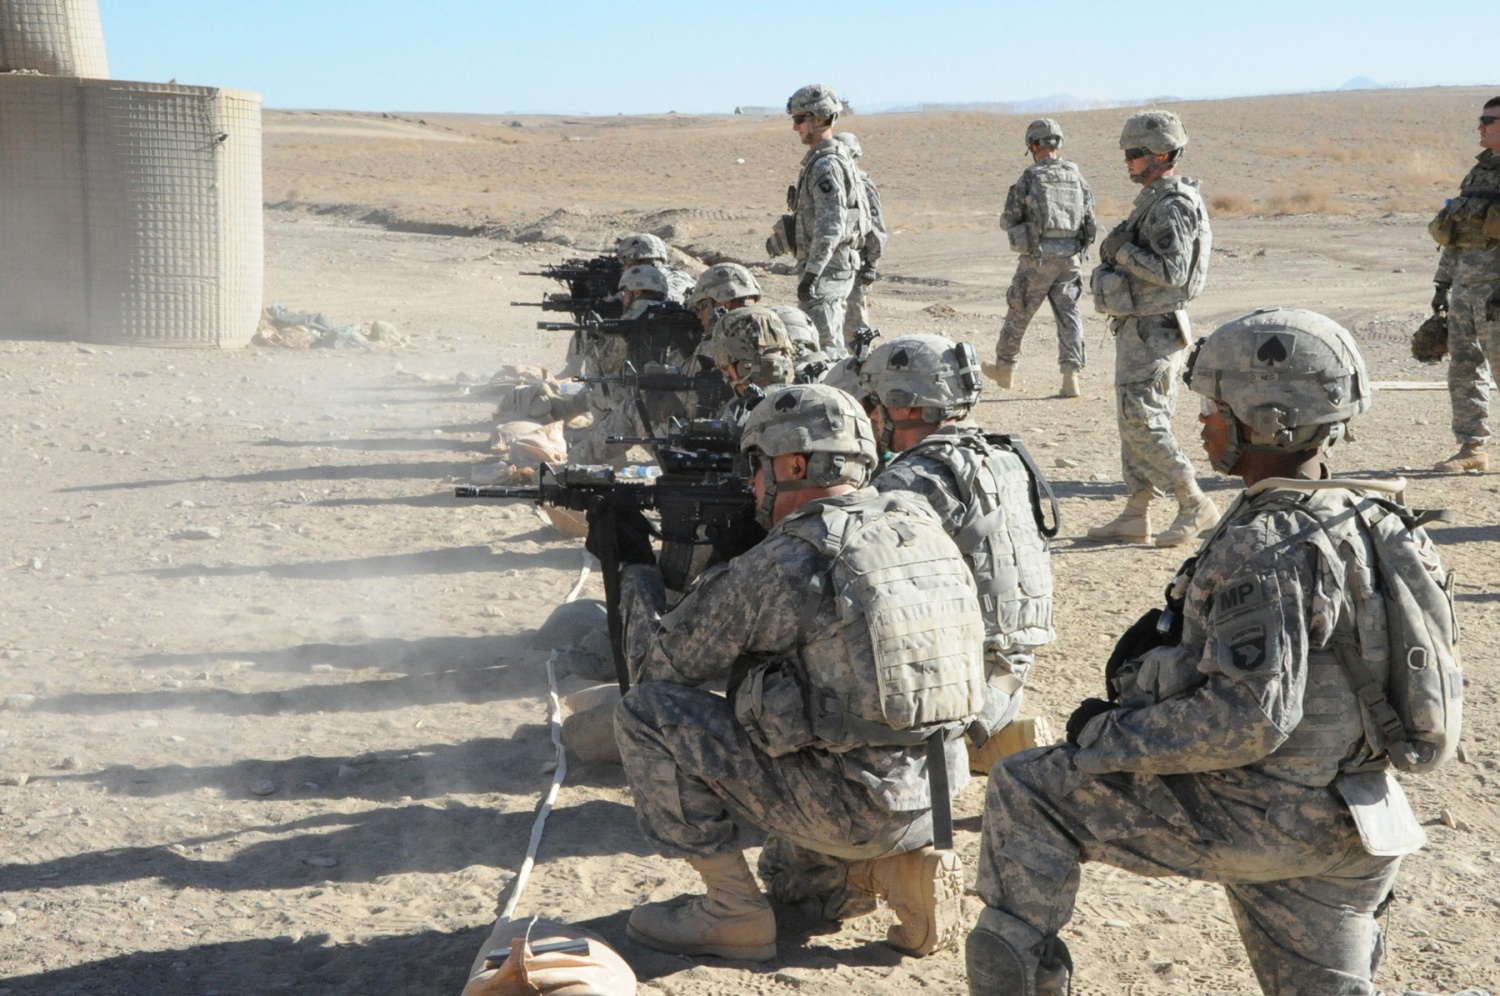 By The U.S. Army (Stress shoot) [CC BY 2.0 (https://creativecommons.org/licenses/by/2.0) or Public domain], via Wikimedia Commons